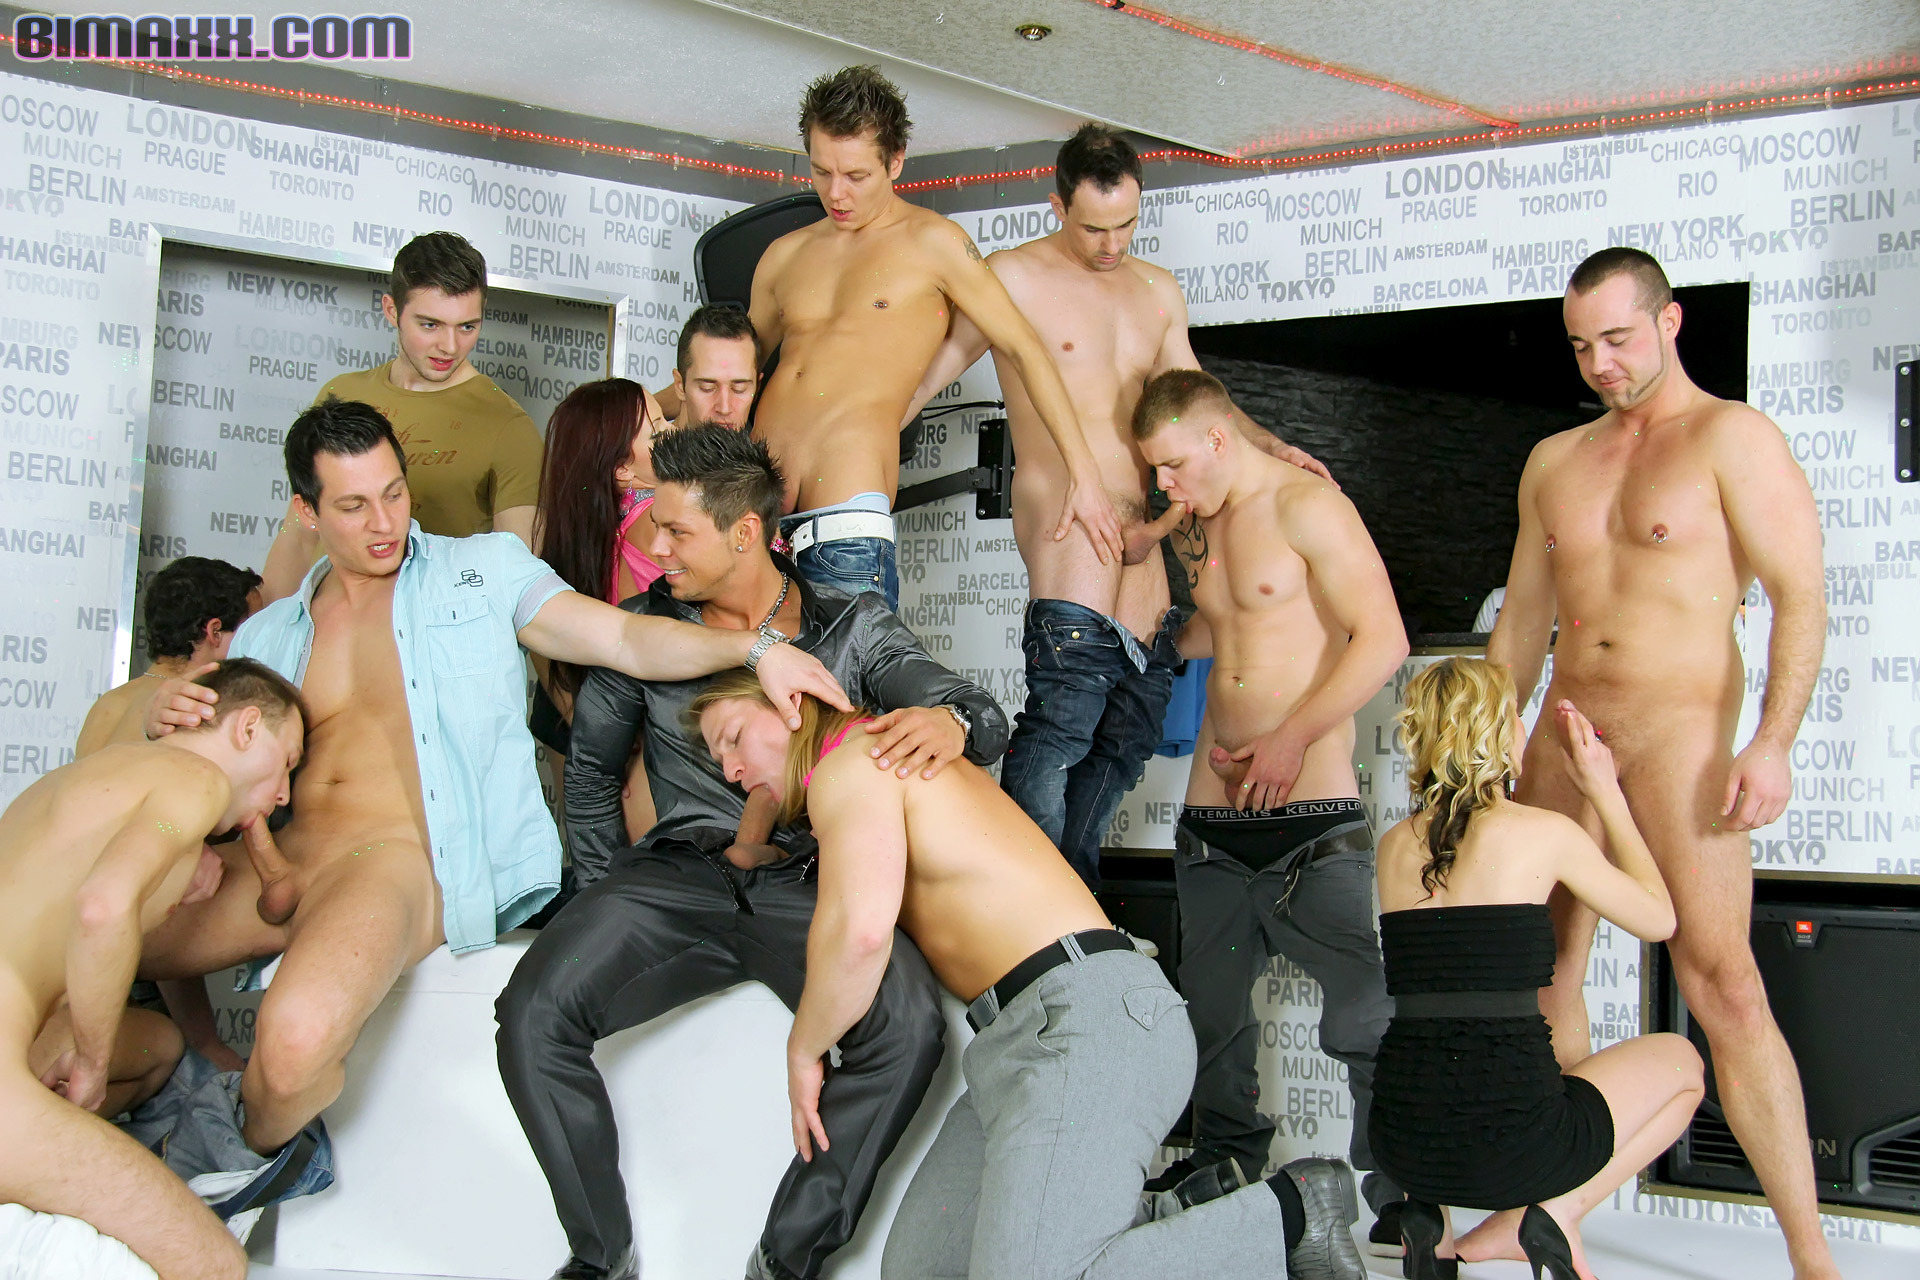 Final, strippers bisexual share your